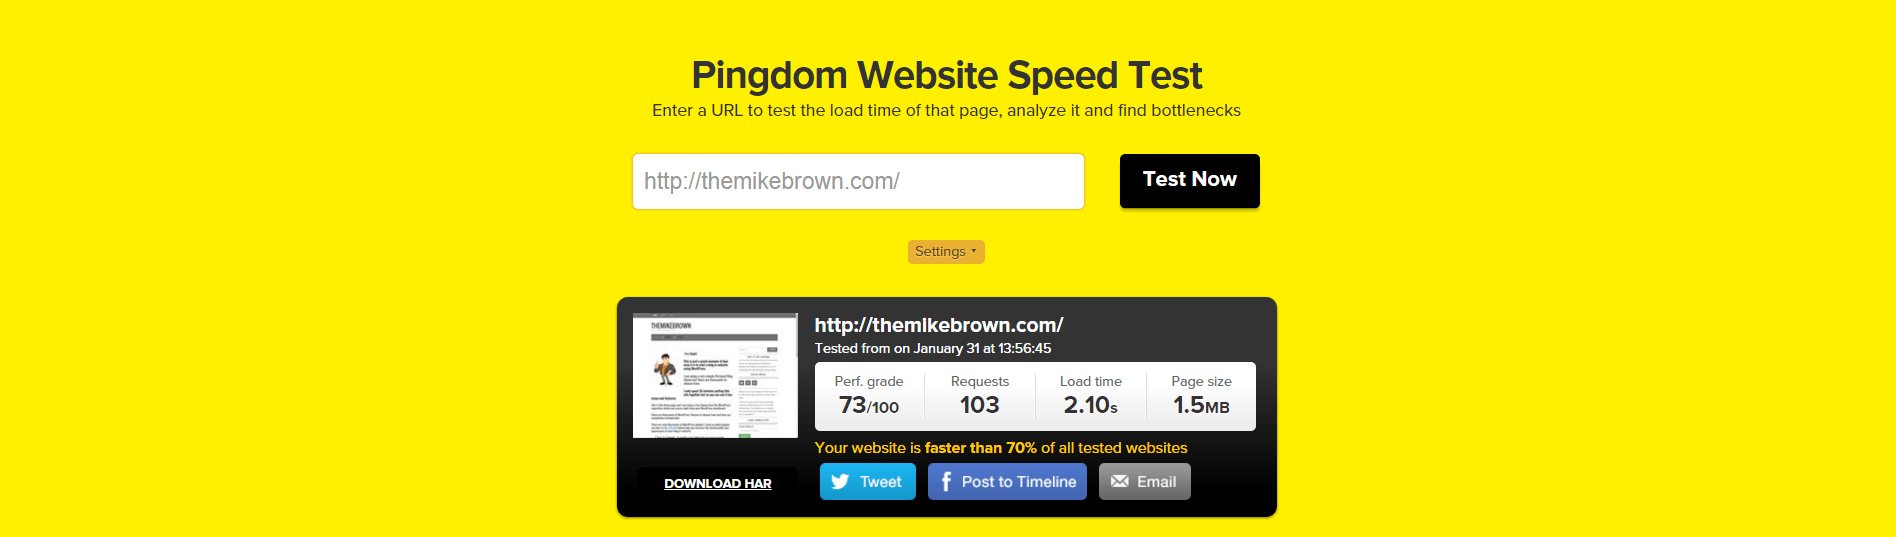 TheMikeBrown.com_Speed_Test_Results_Pingdom